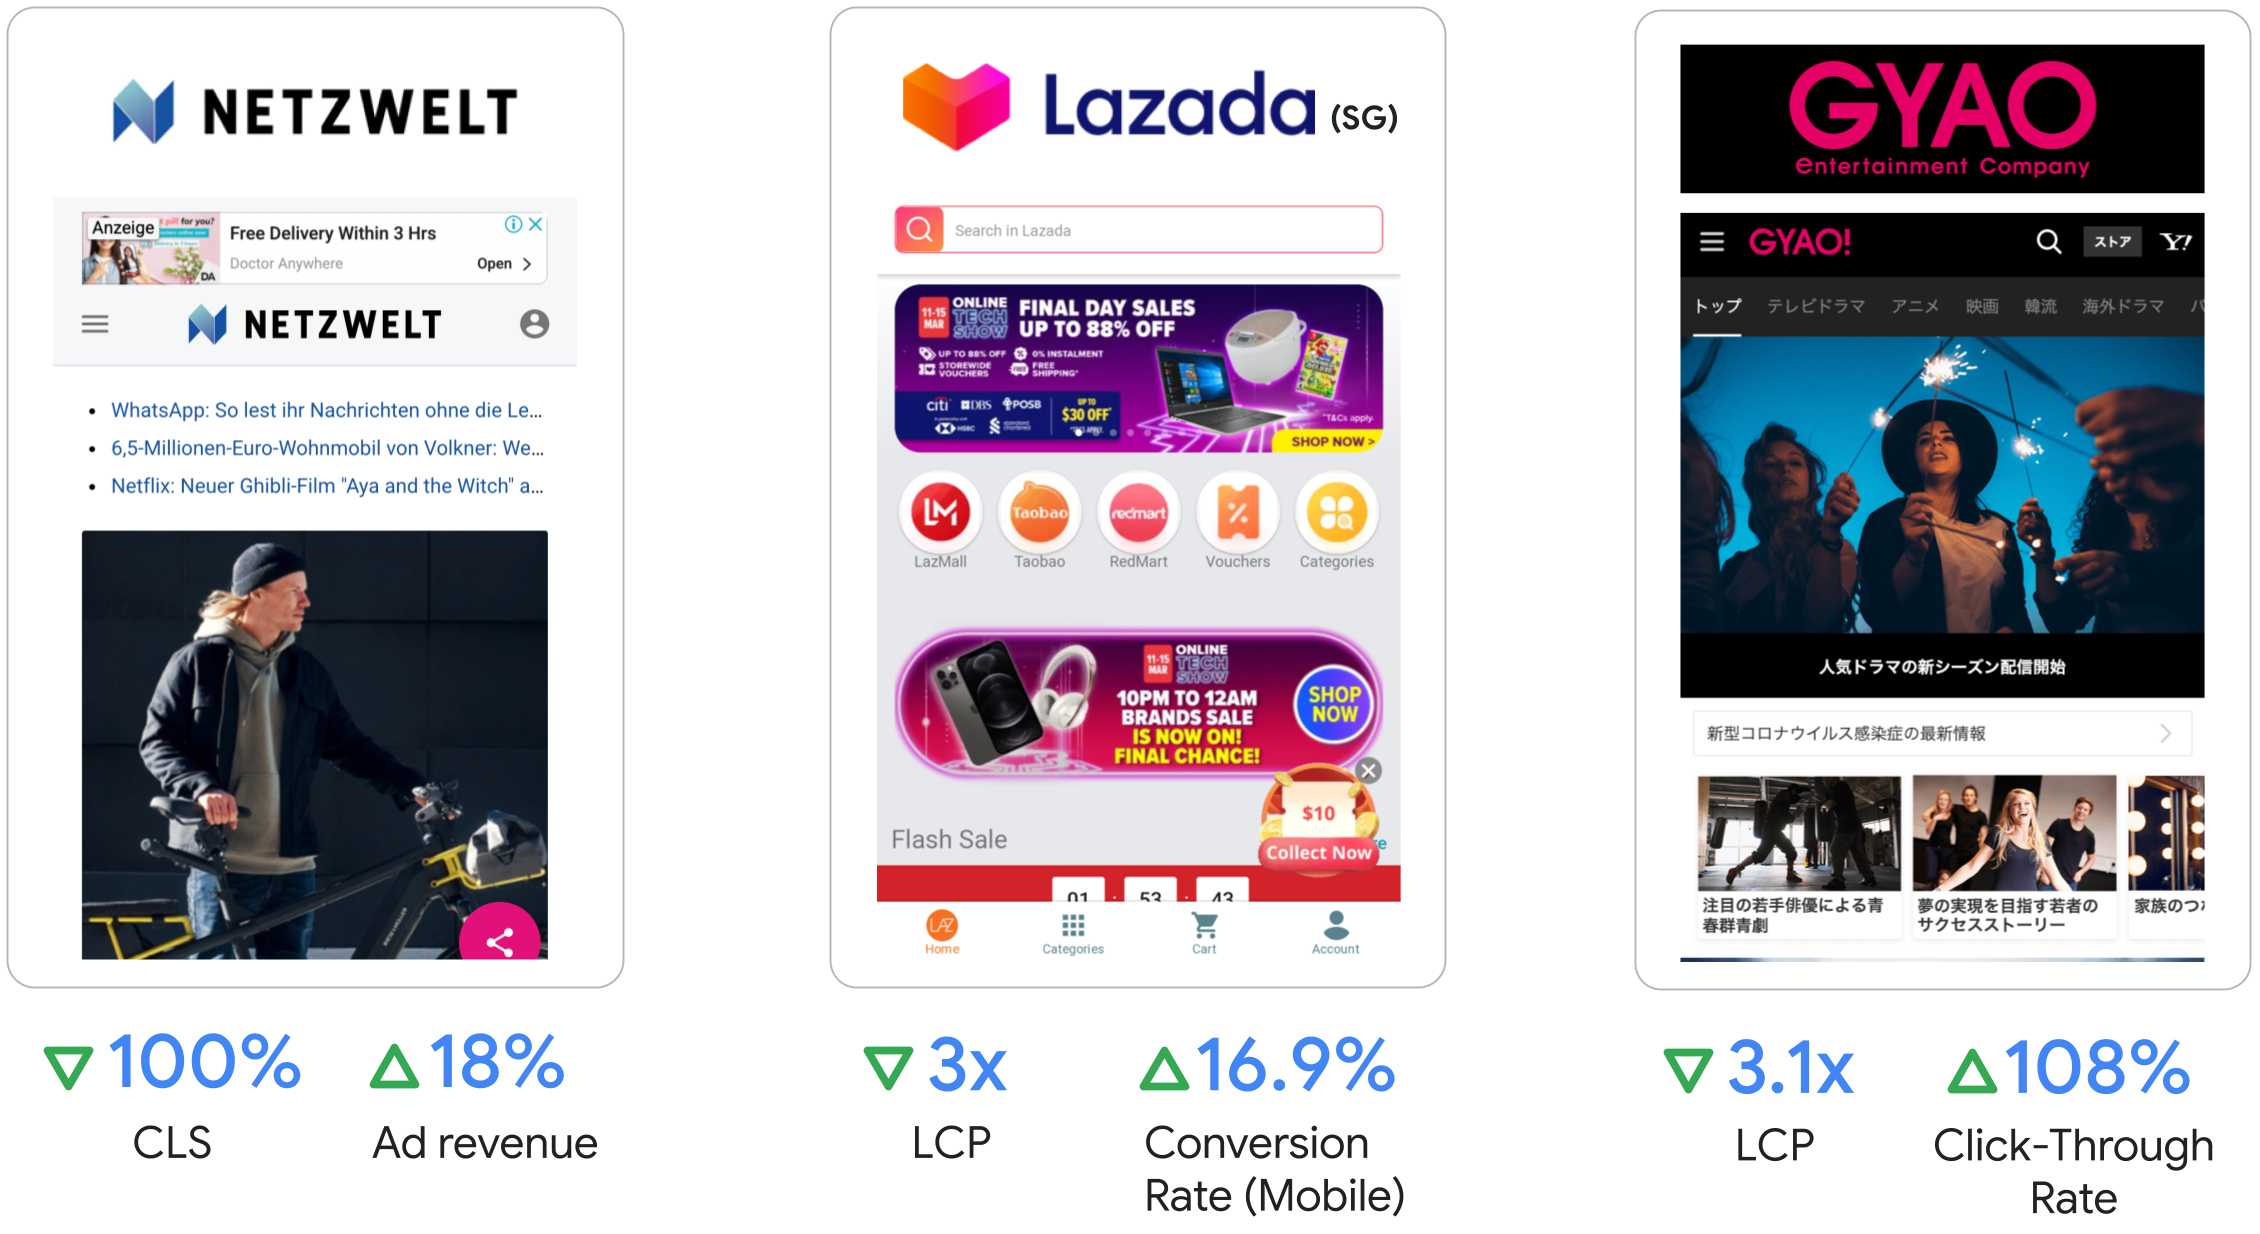 Netzwelt saw 18 percent increase ads revenue, Lazada saw 3x LCP and 16.9 percent increase in conversion rate on mobile, GYAO saw 3.1x LCP and 108 percent improvement in click-through rate